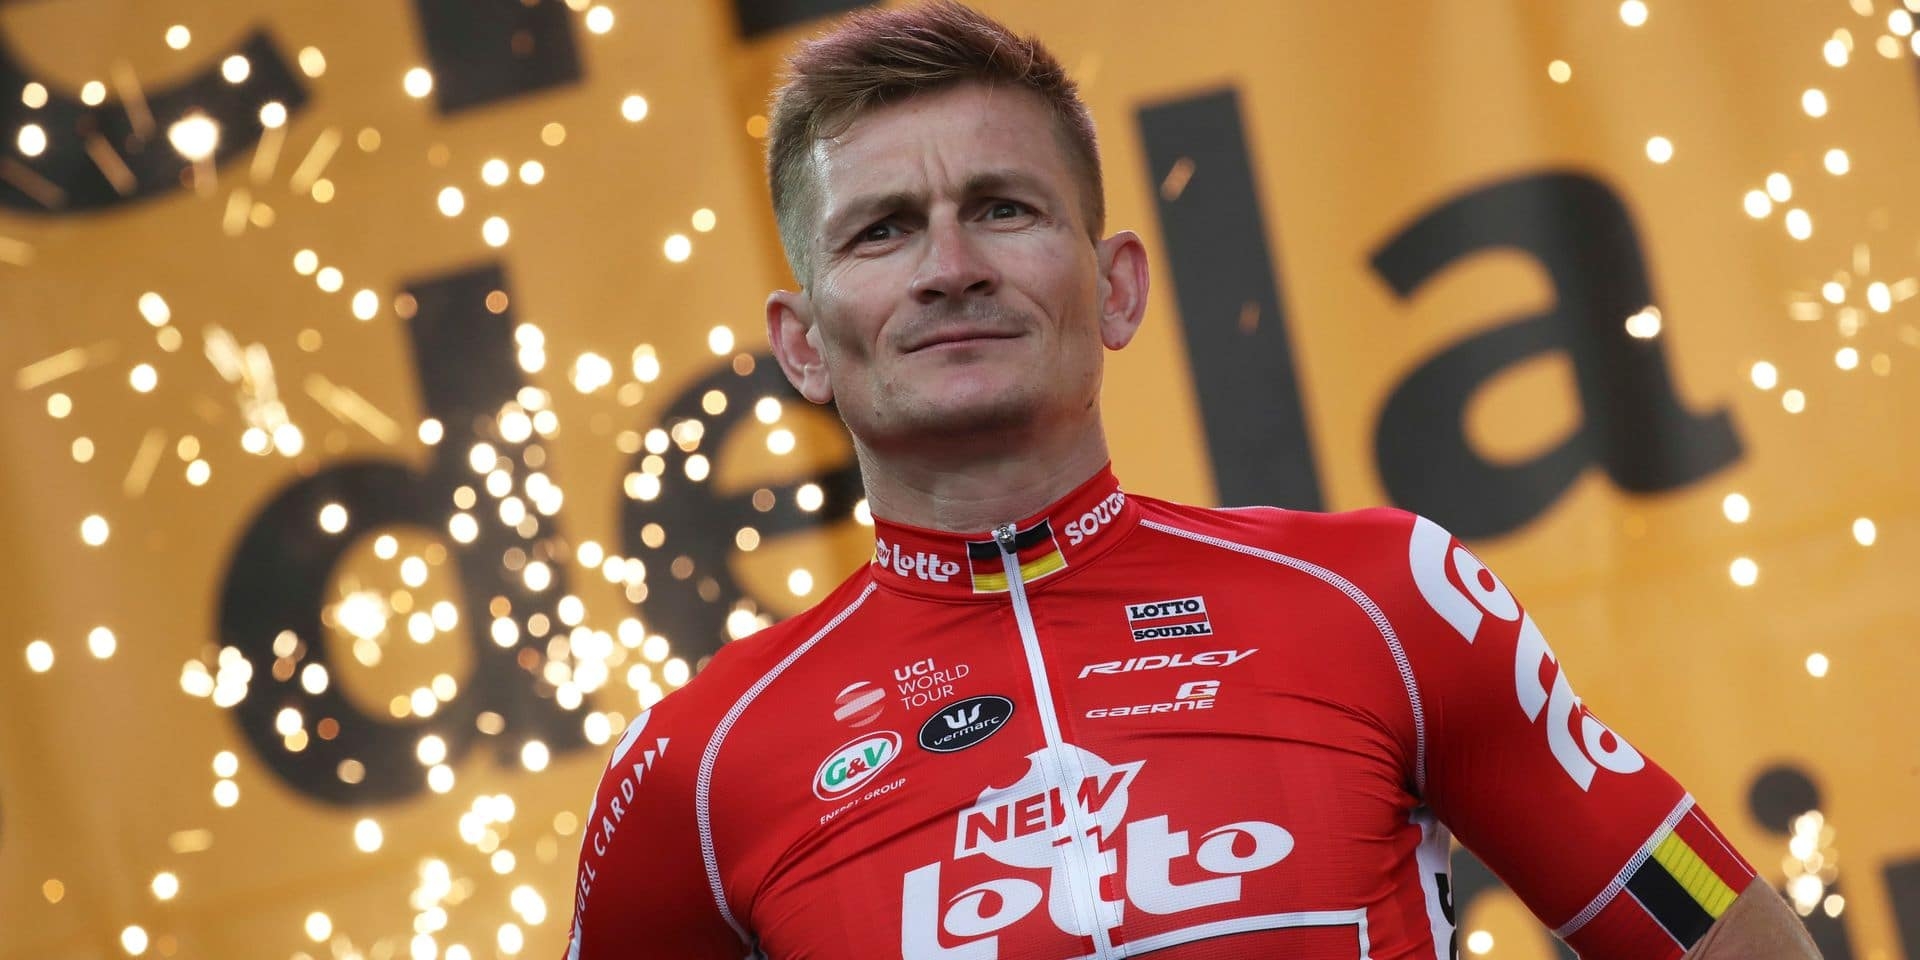 Germany's Andre Greipel stands on the podium during the Tour de France cycling race team presentation in La Roche-sur-Yon, Vendee region, France, Thursday, July 5, 2018, ahead of upcoming Saturday's start of the race. (AP Photo/Christophe Ena )